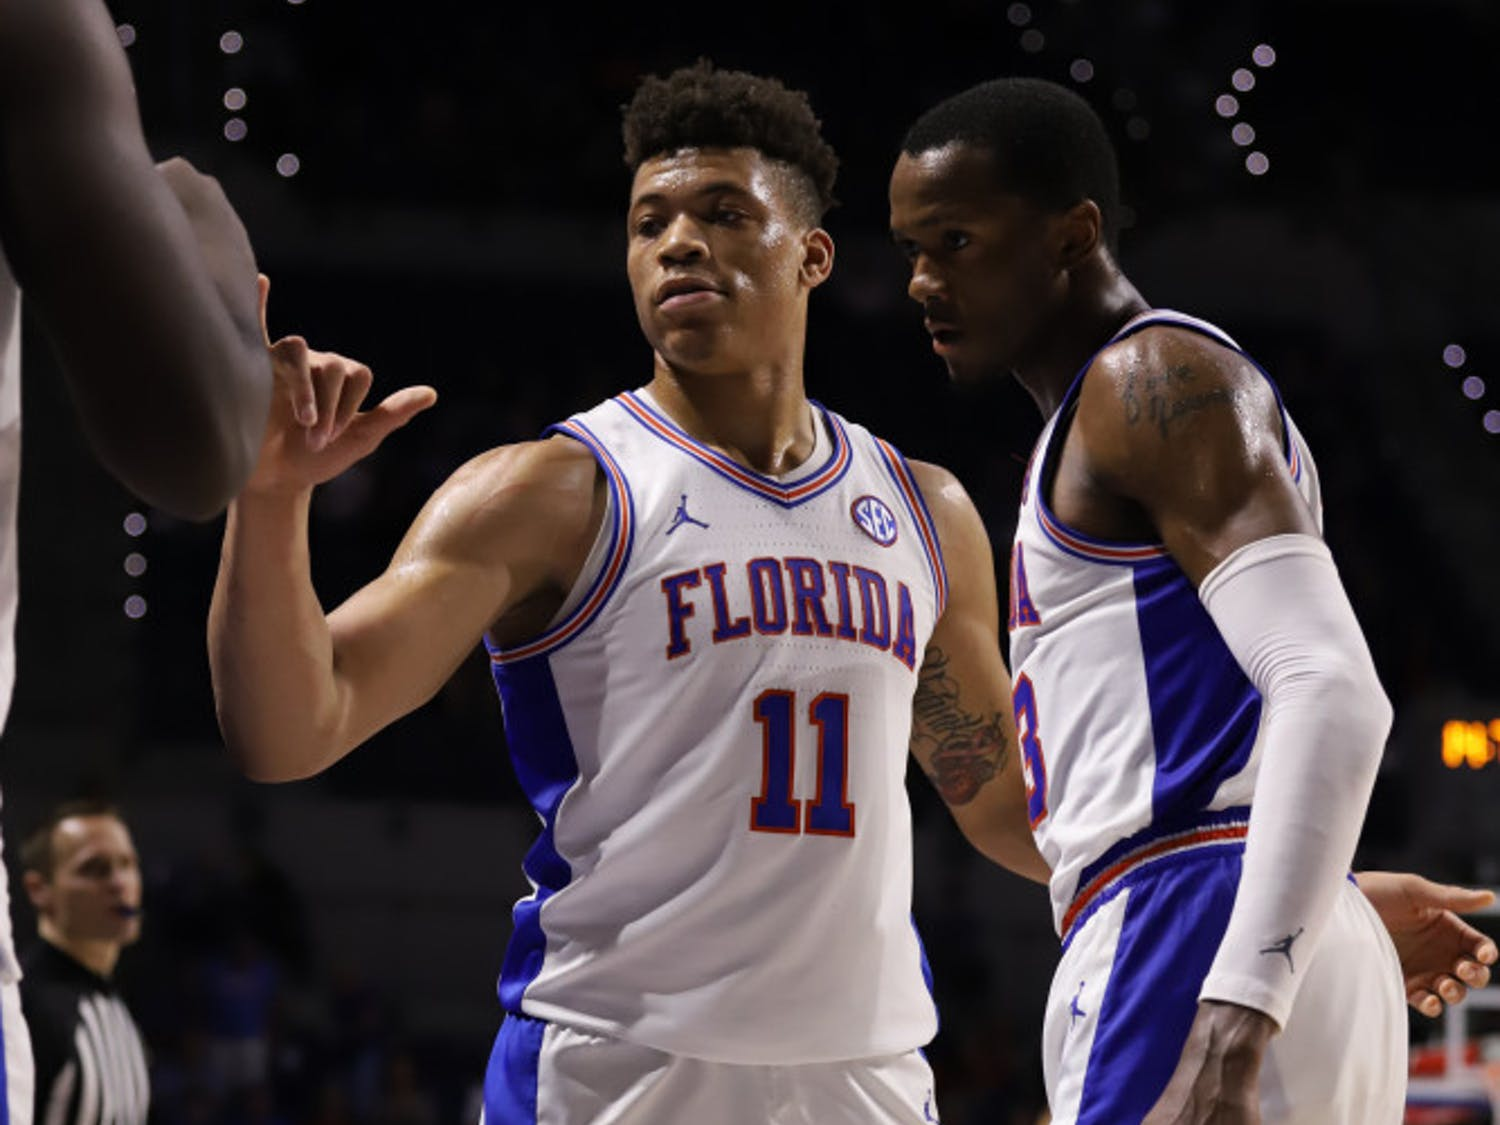 Junior Keyontae Johnson (left) and sophomore Scottie Lewis (right) at the Gators' game against Arkansas last season. They are among Florida's returning defensive leaders this season.